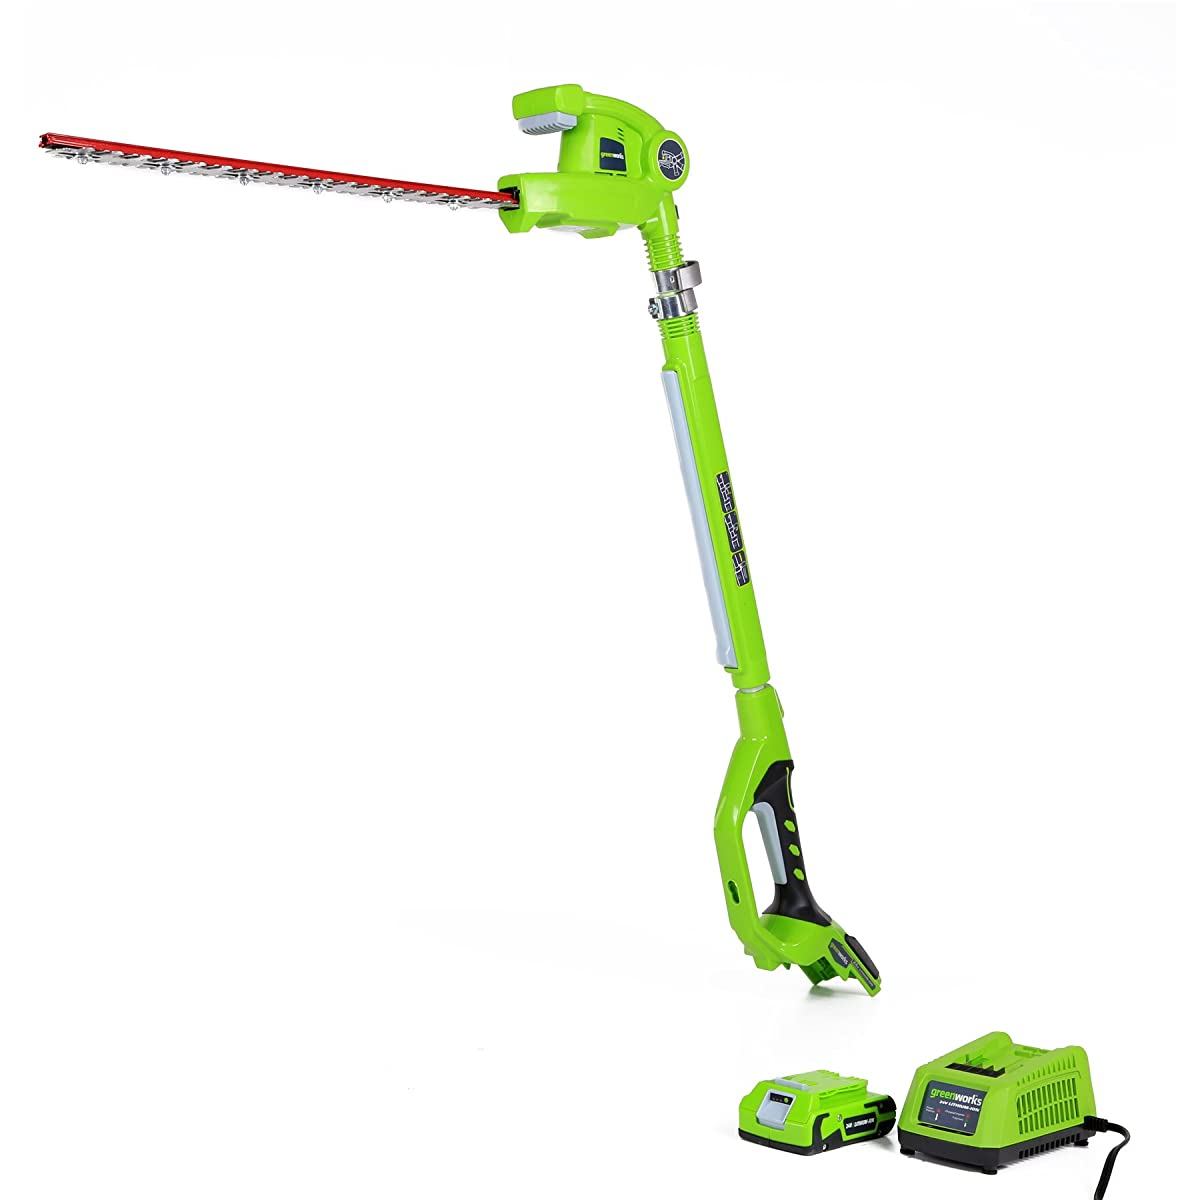 GreenWorks 7.25 24V Cordless, 2.0 Battery Included 22242 Pole Hedge Trimmer, 2Ah Charger, Electric Lime